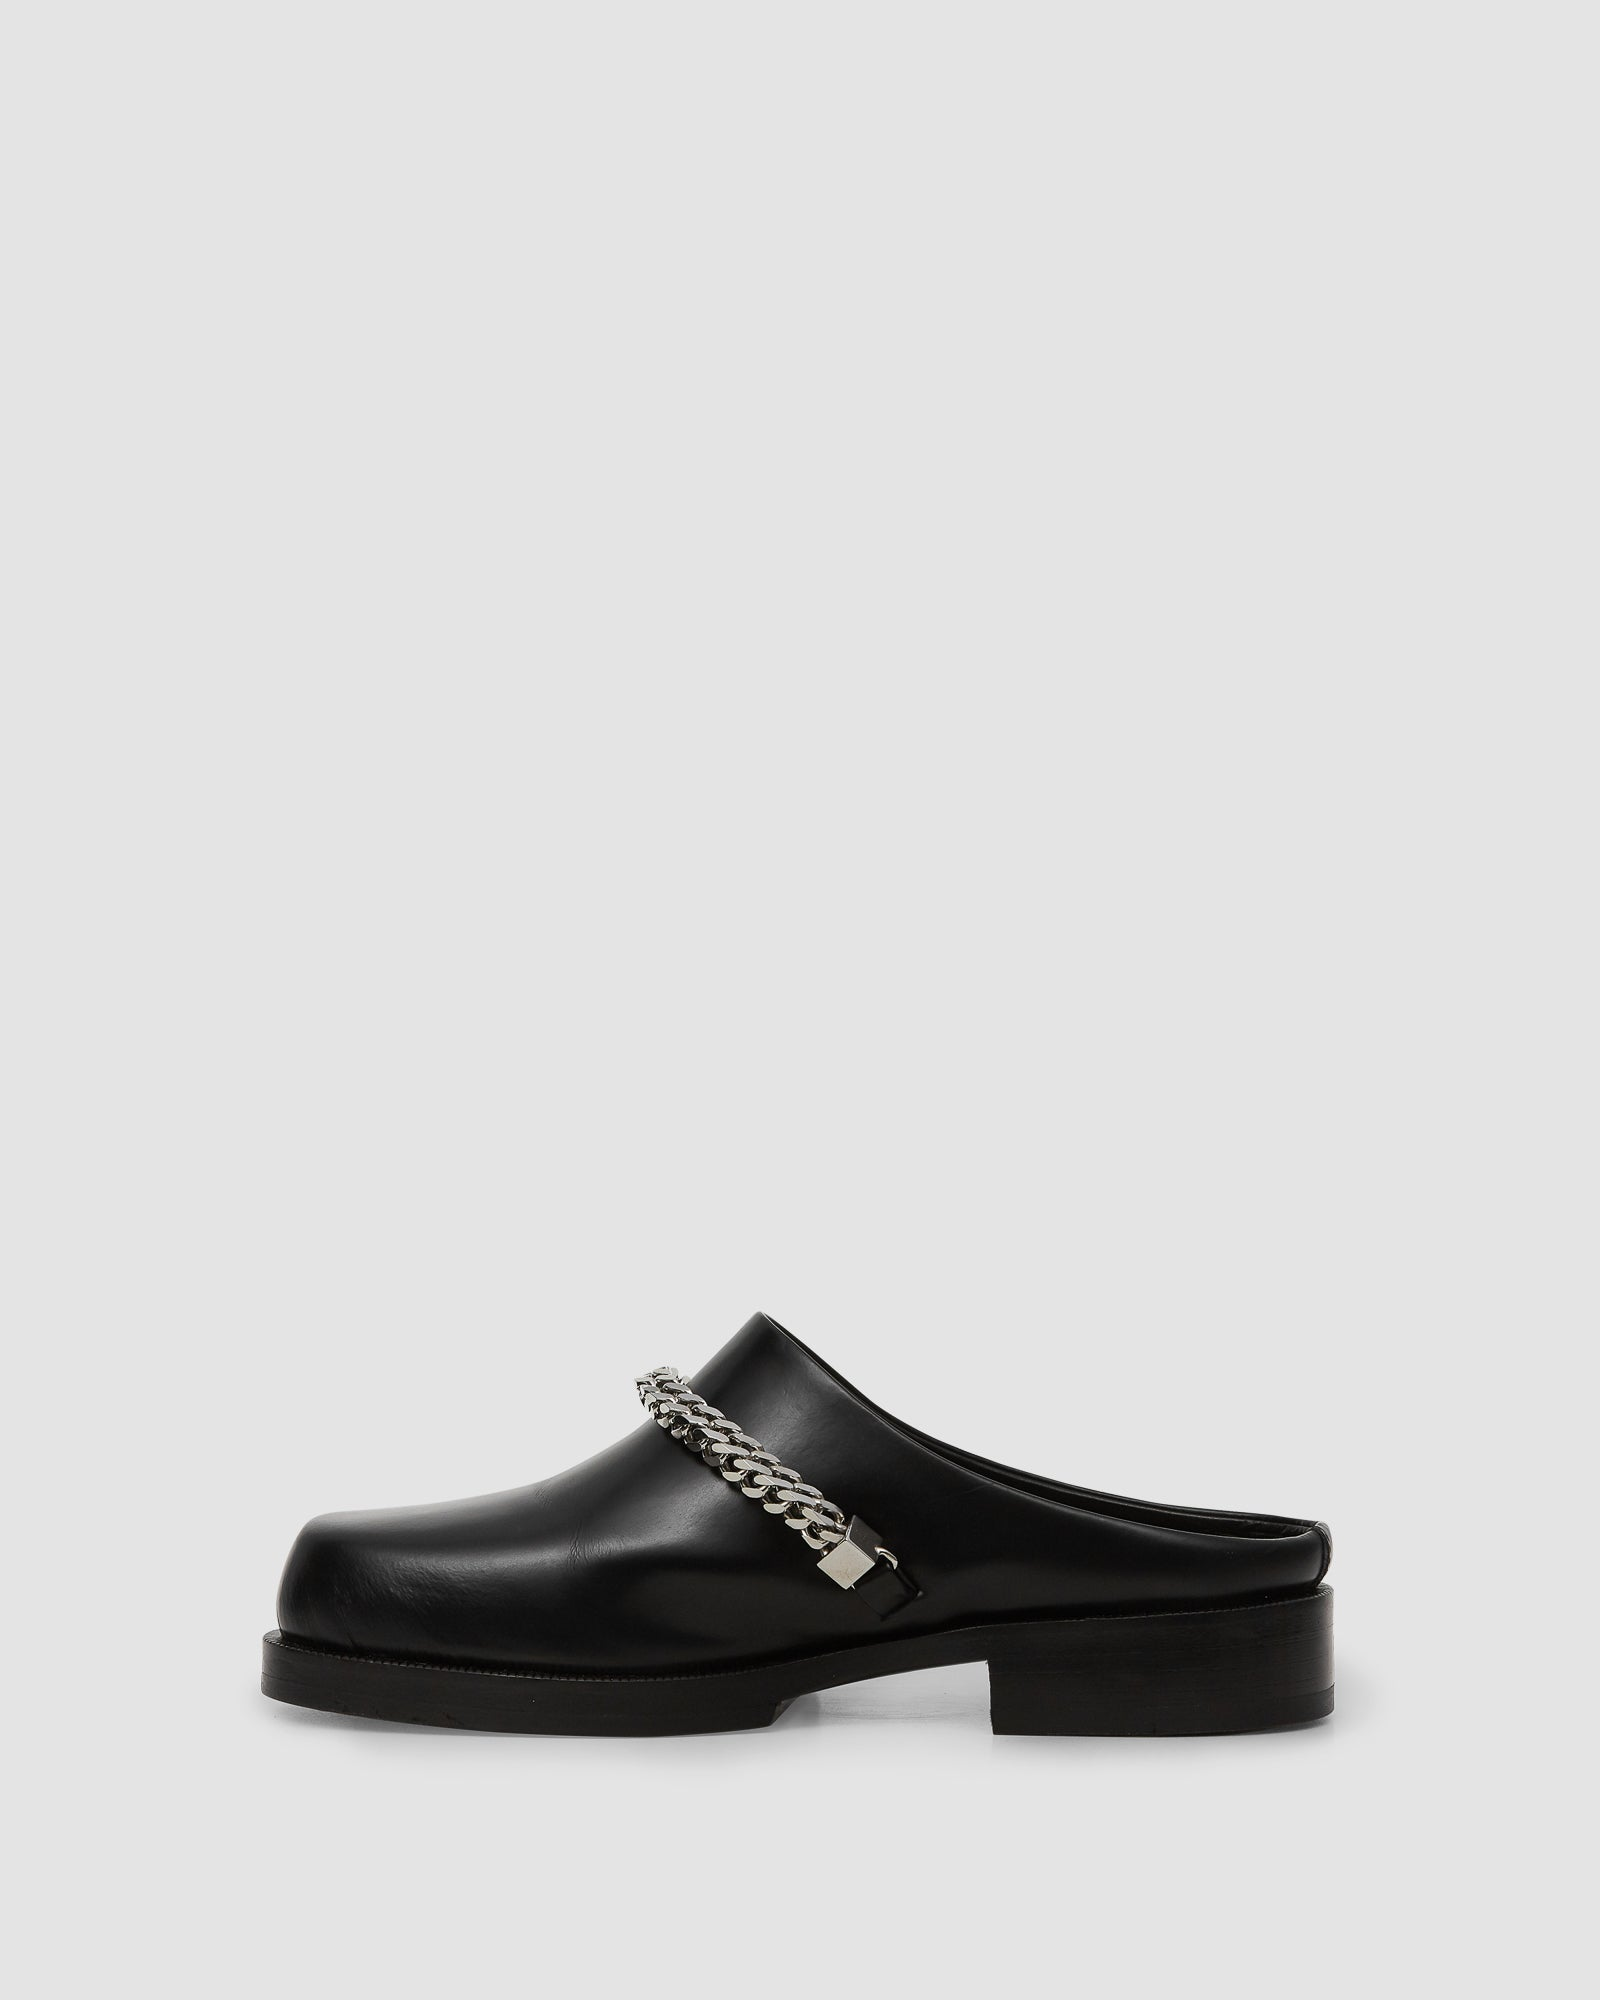 1017 ALYX 9SM | FORMAL CLOG W CHAIN | Shoe | Black, Google Shopping, Man, MULES, S20, S20 Drop II, Shoes, UNISEX, Woman